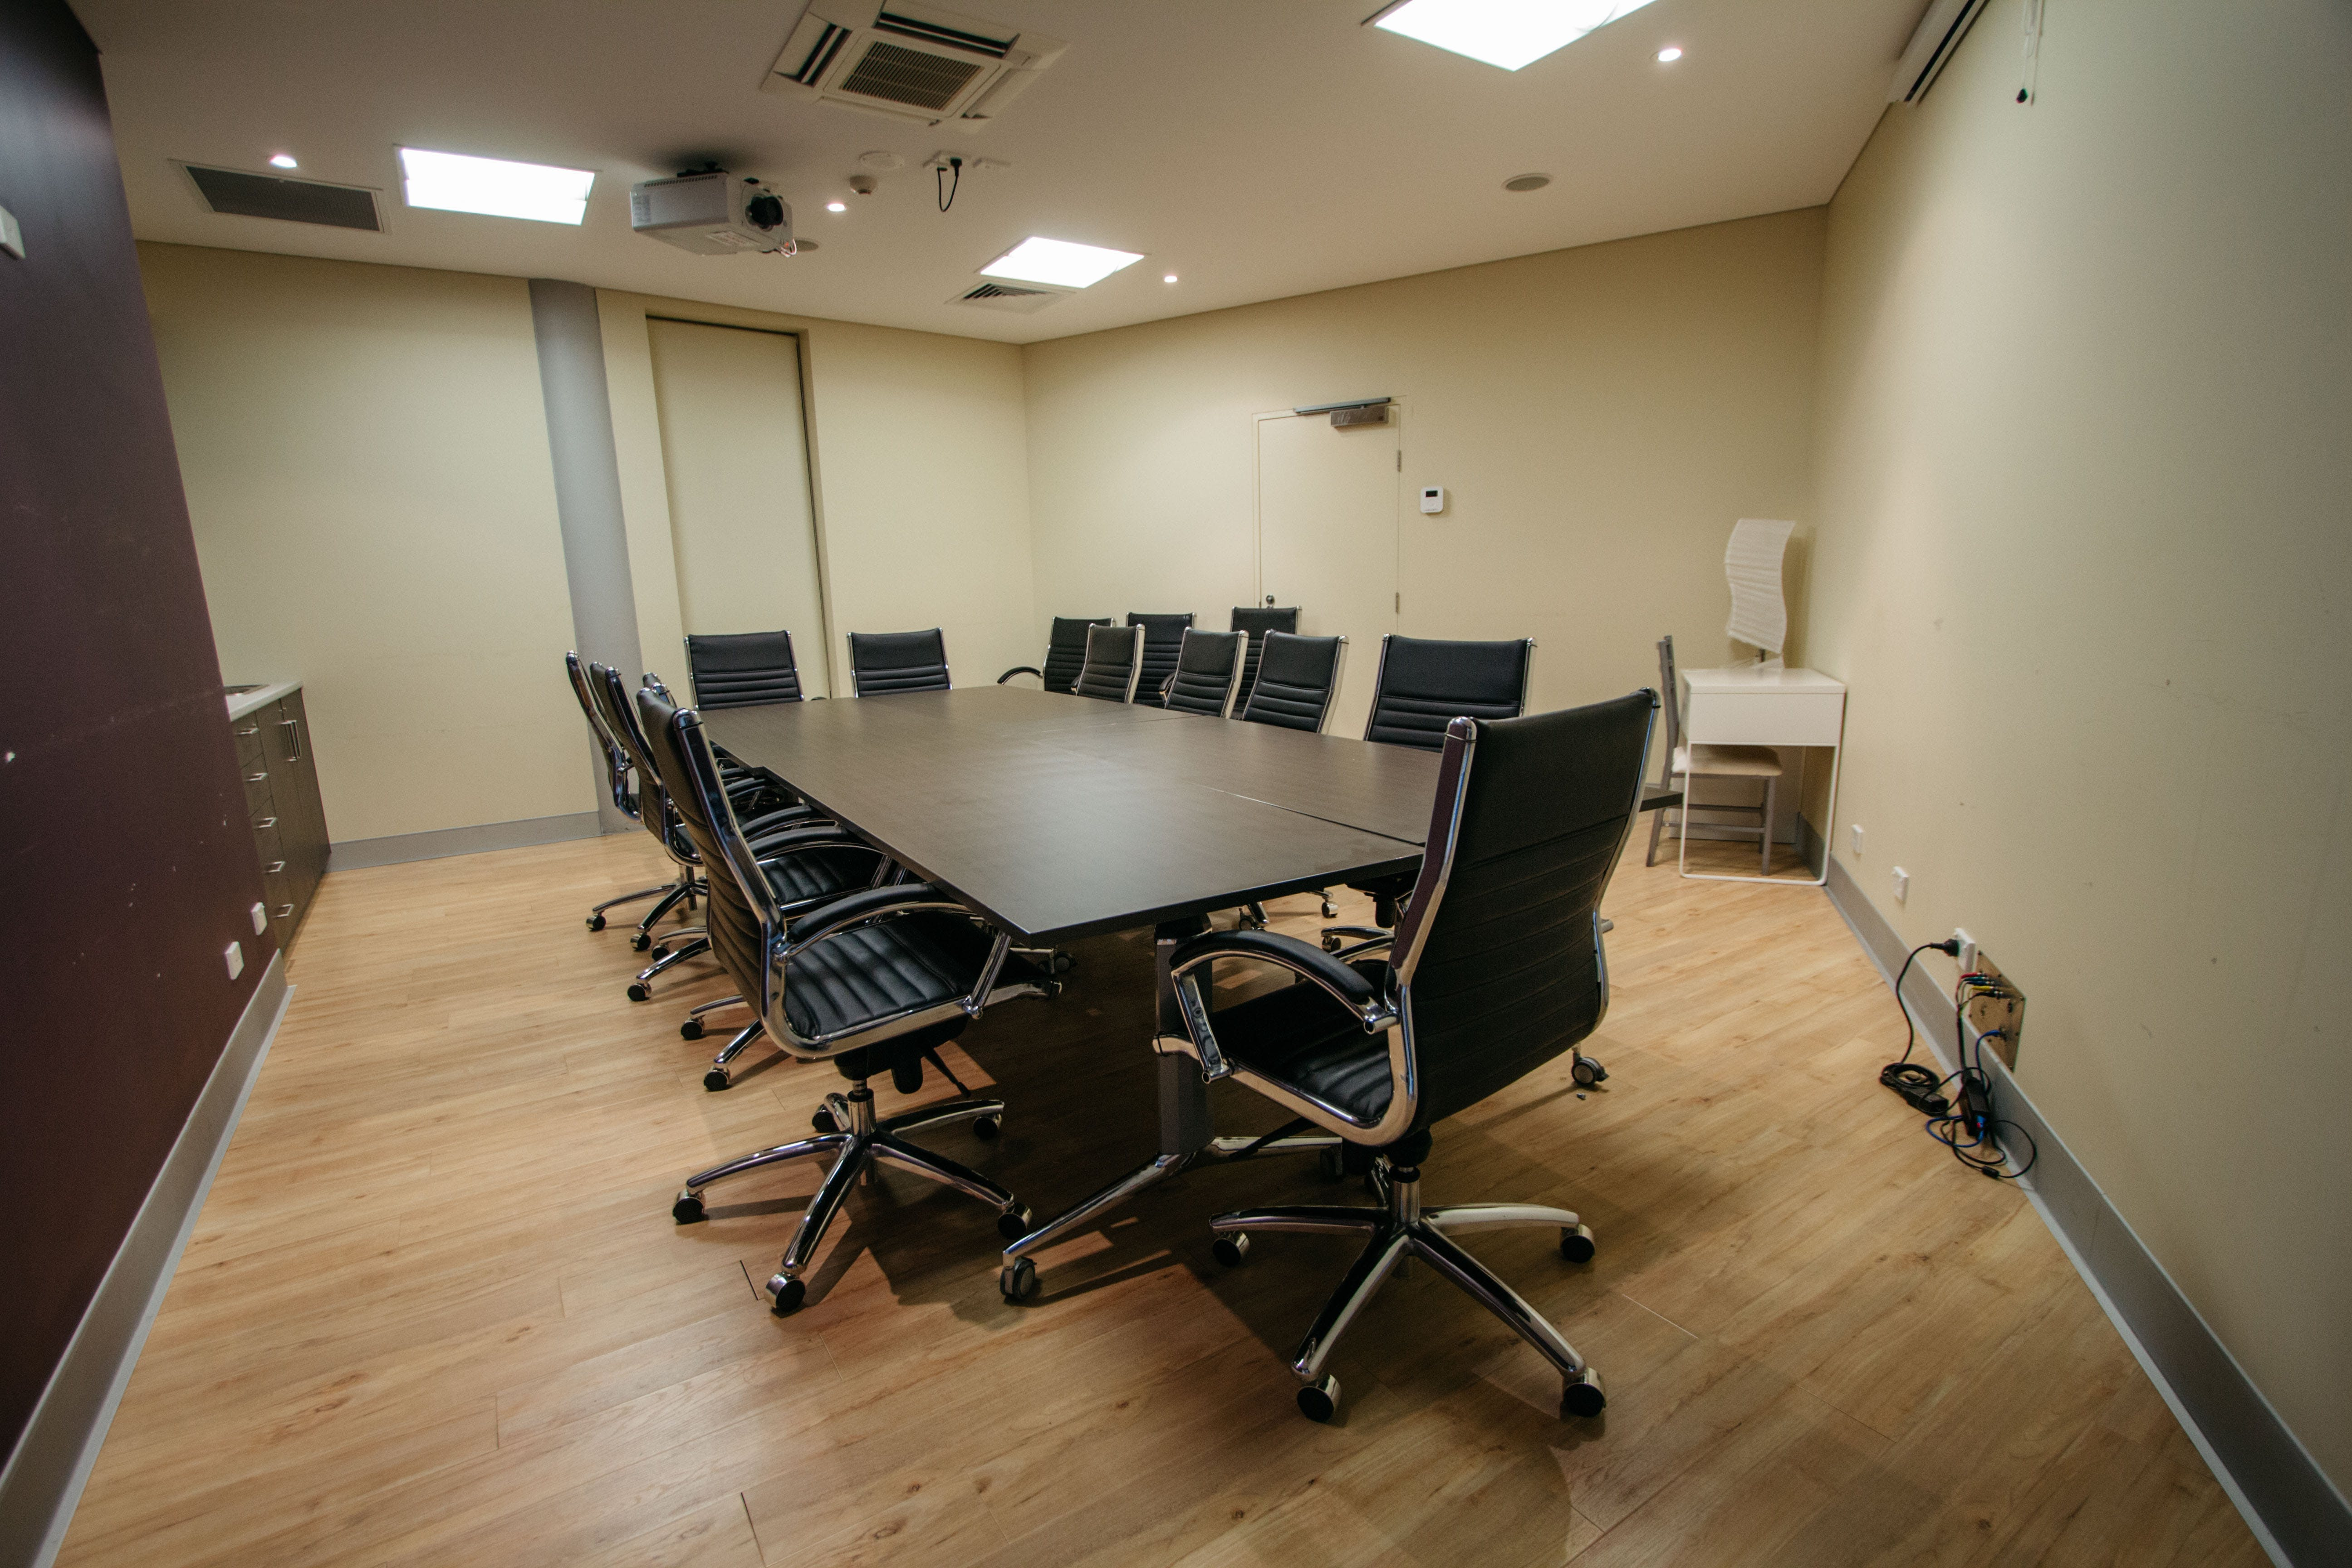 Antioch, meeting room at Unidus Community Centre, image 1